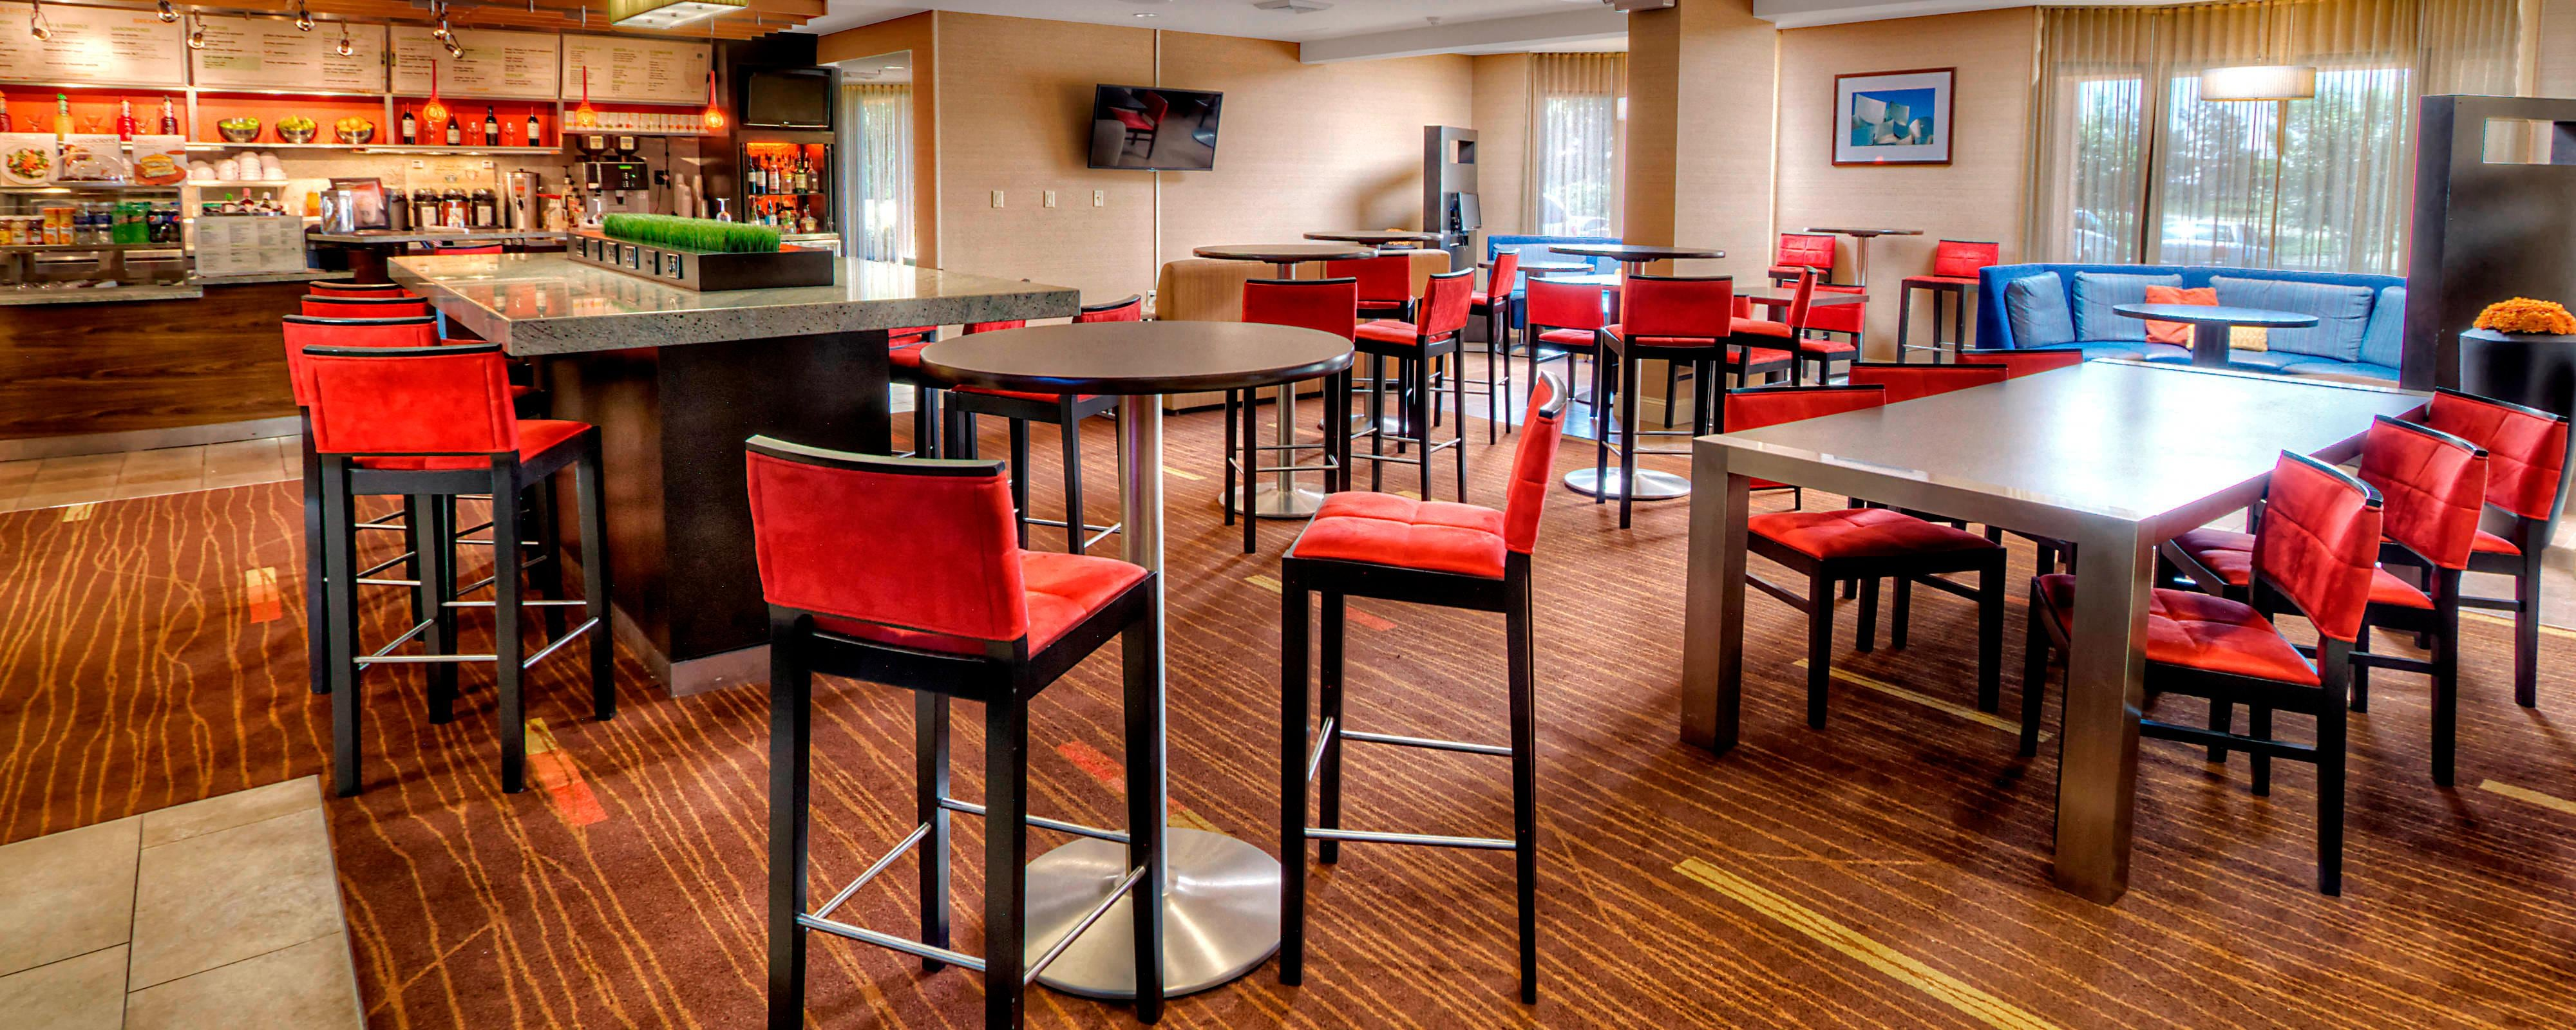 Burlington hotel restaurants | Courtyard Burlington Dining ...